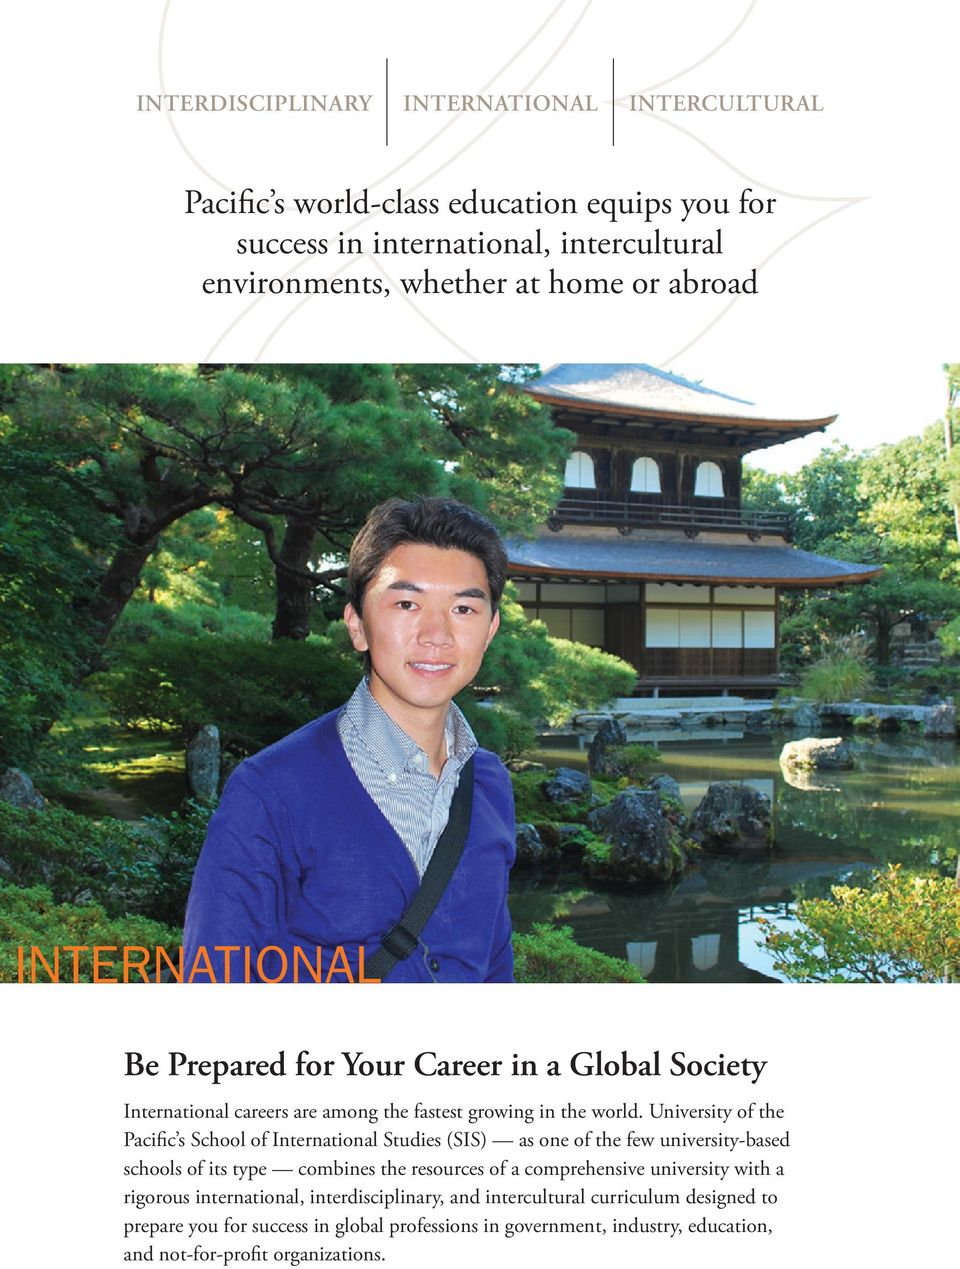 University of the Pacific s School of International Studies (SIS) as one of the few university-based schools of its type combines the resources of a comprehensive